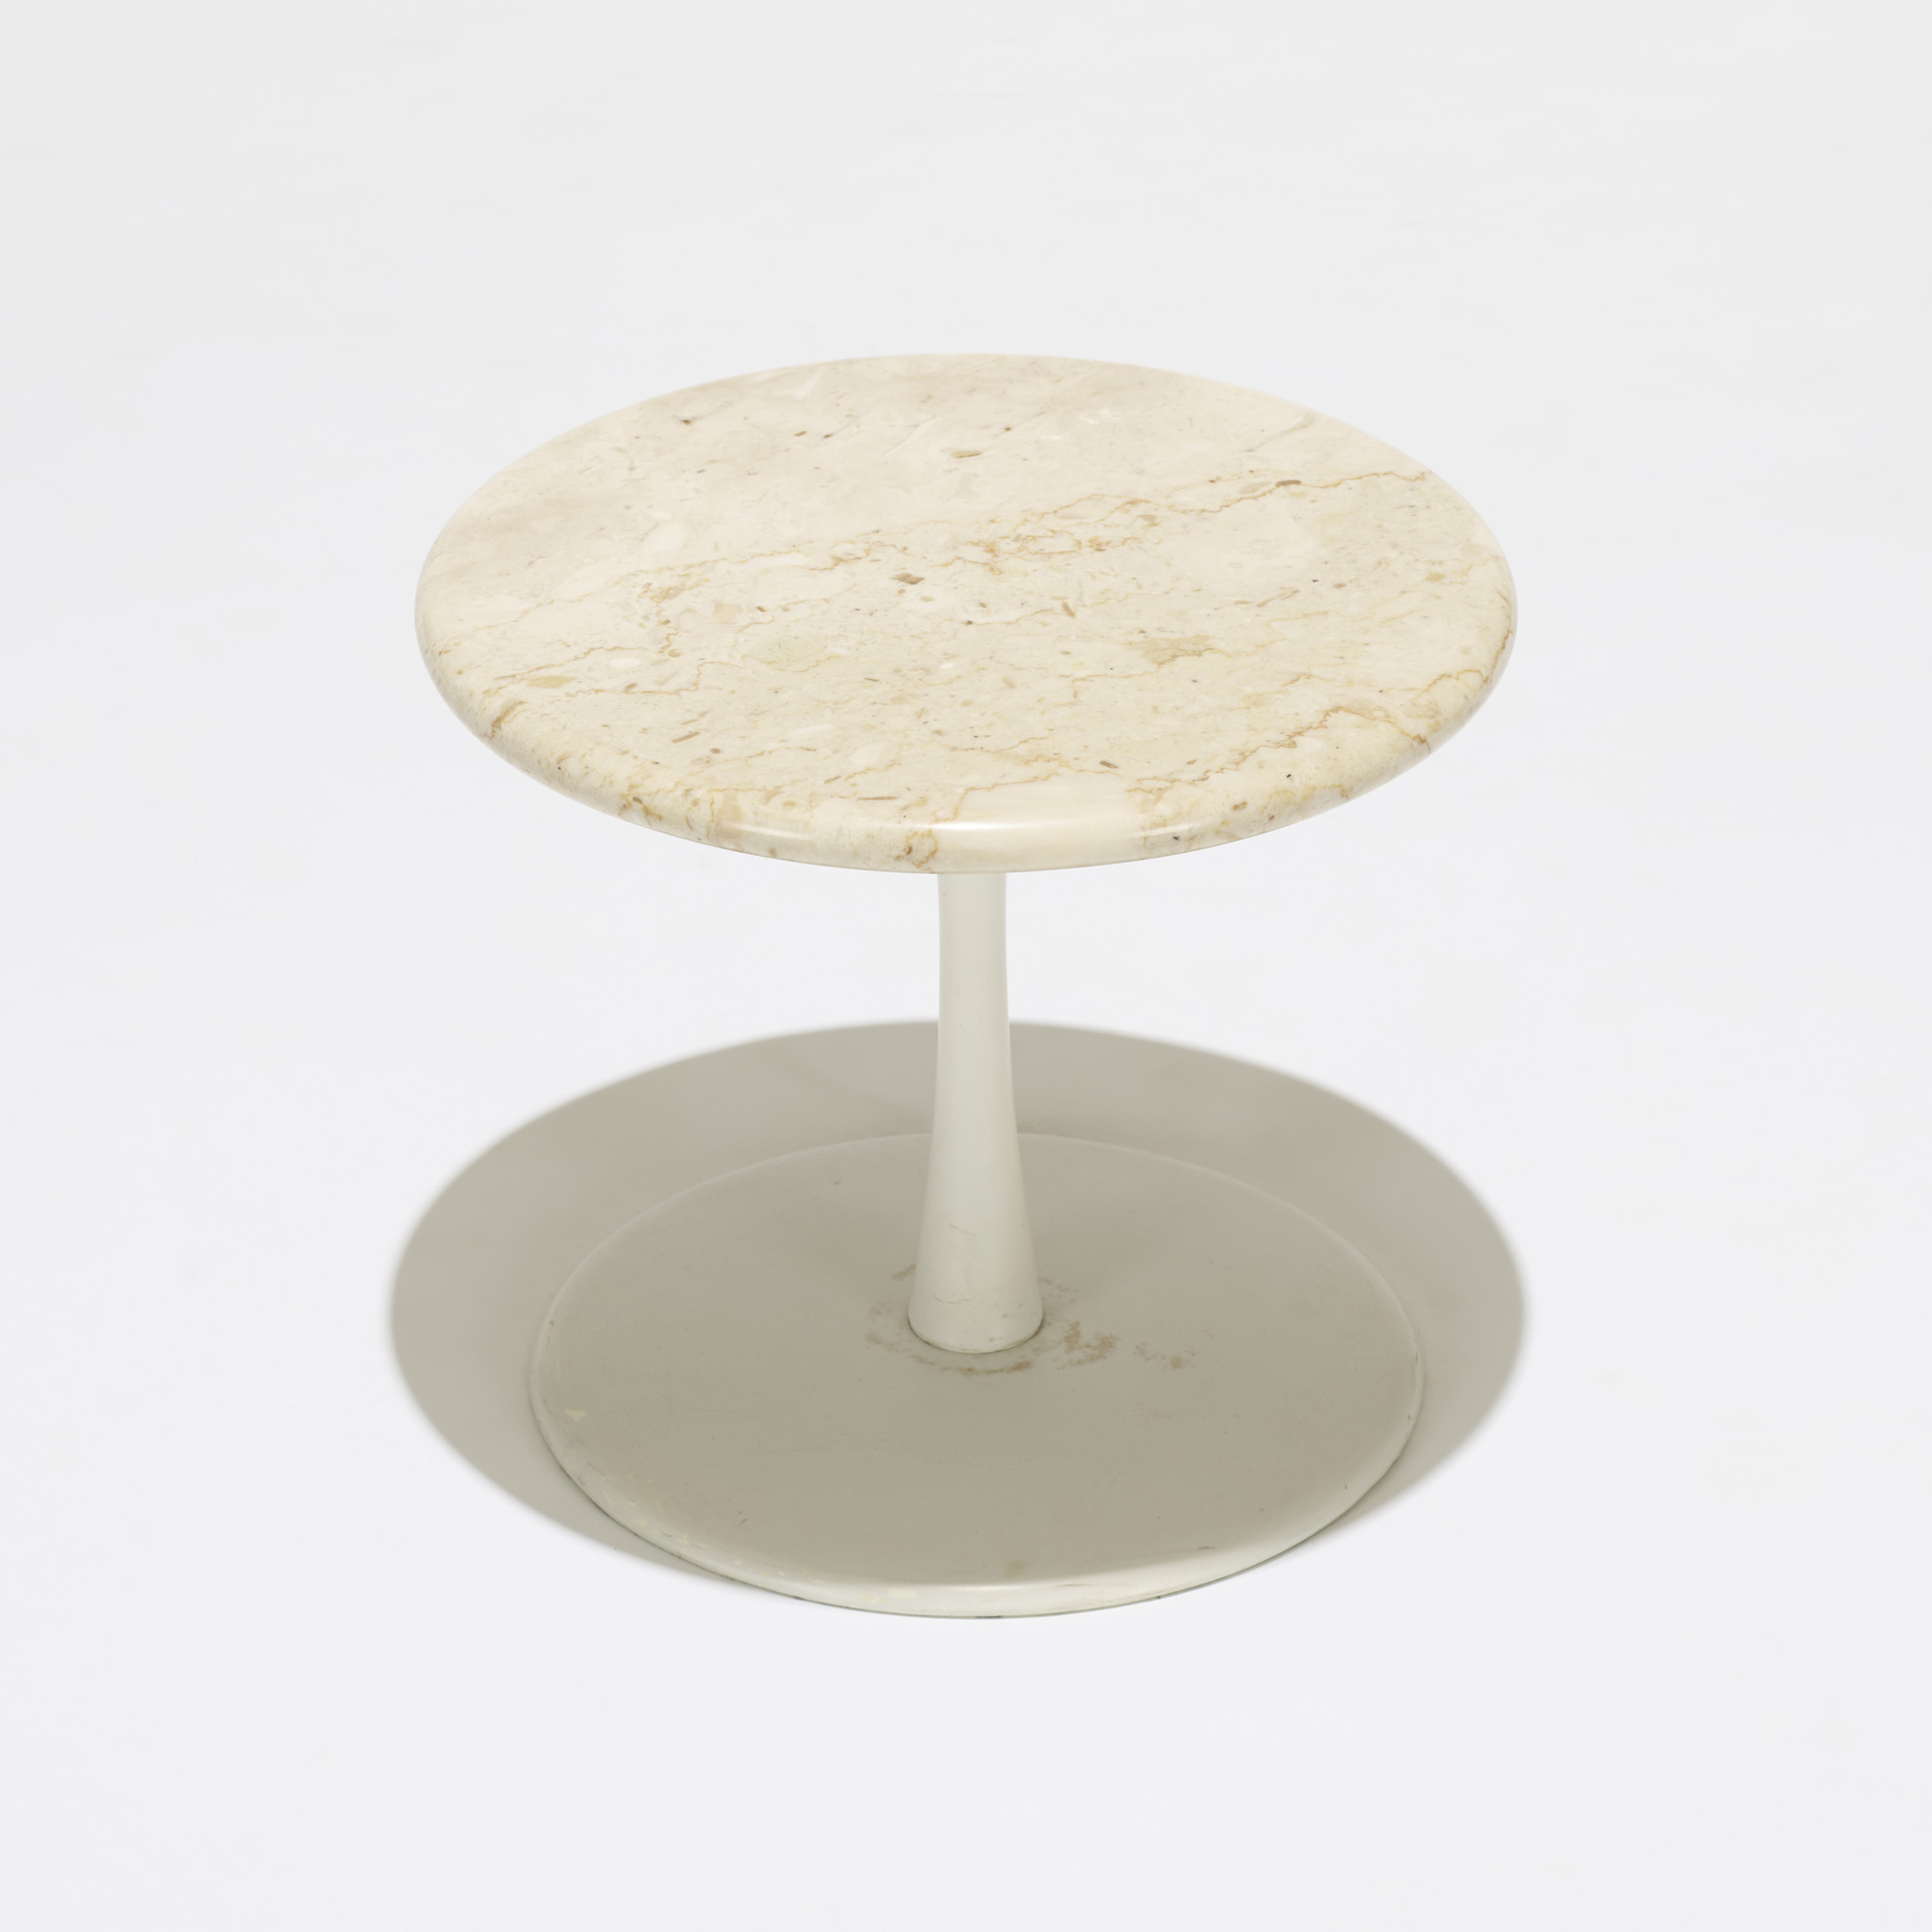 188: Erwine and Estelle Laverne / occasional table (2 of 2)